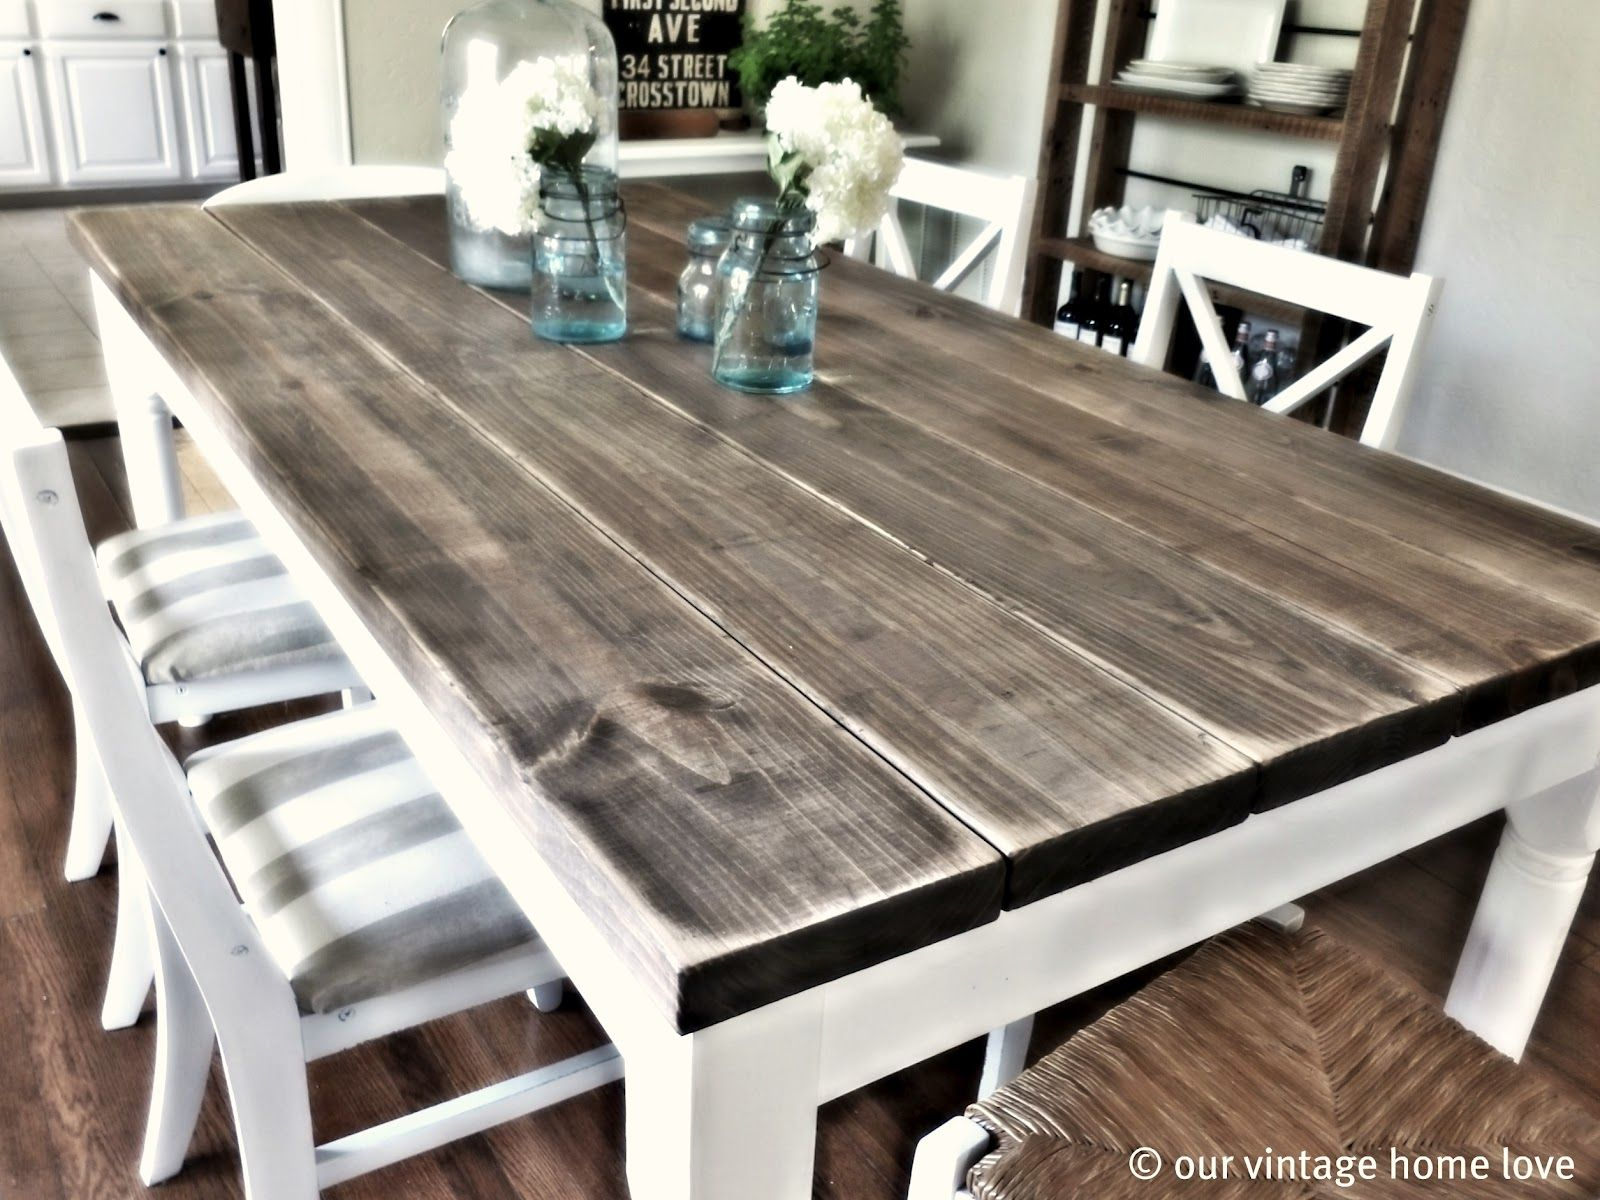 Homemade Dining Room Table Glamorous Our Vintage Home Love Dining Room Table Tutorial I Want This For . Inspiration